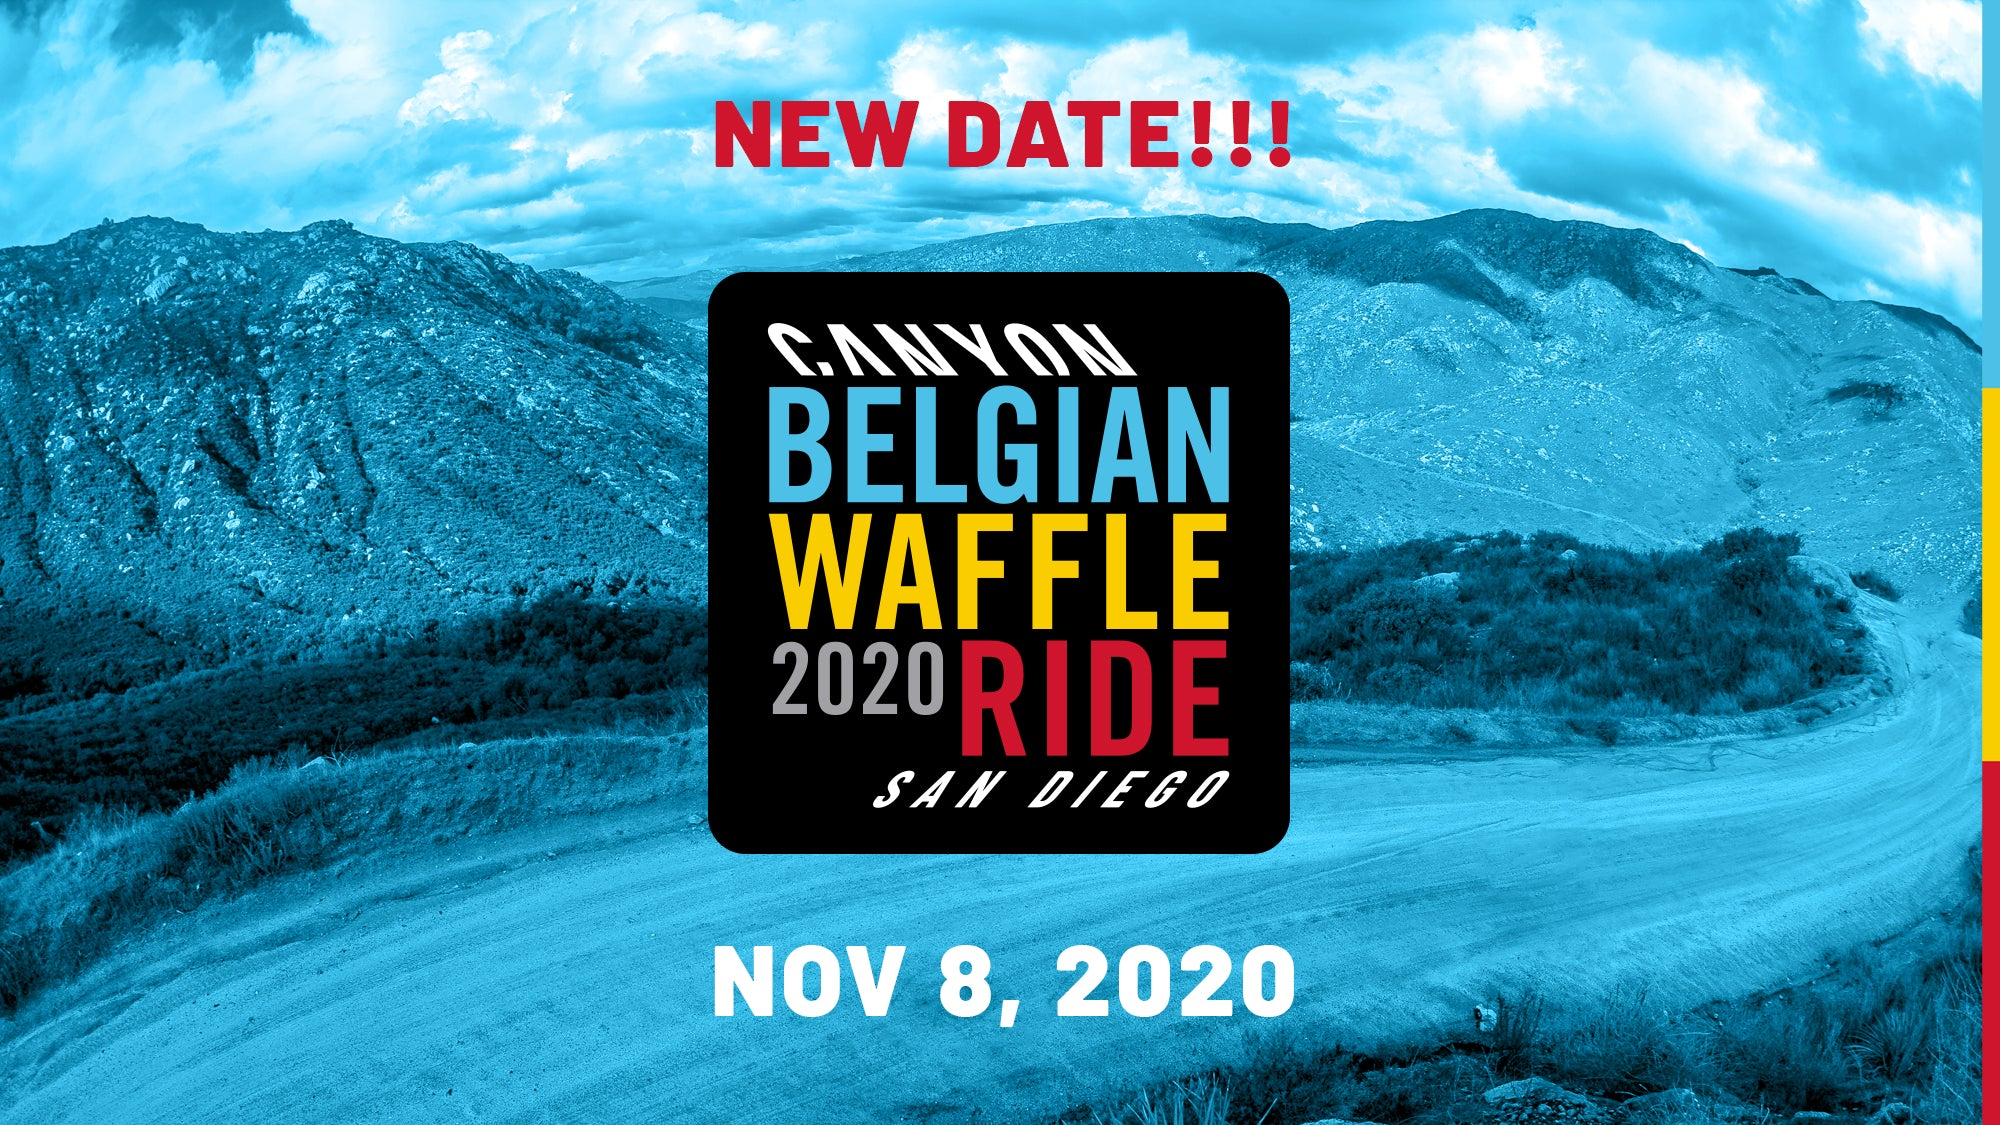 BWR San Diego moved to Nov 8, 2020